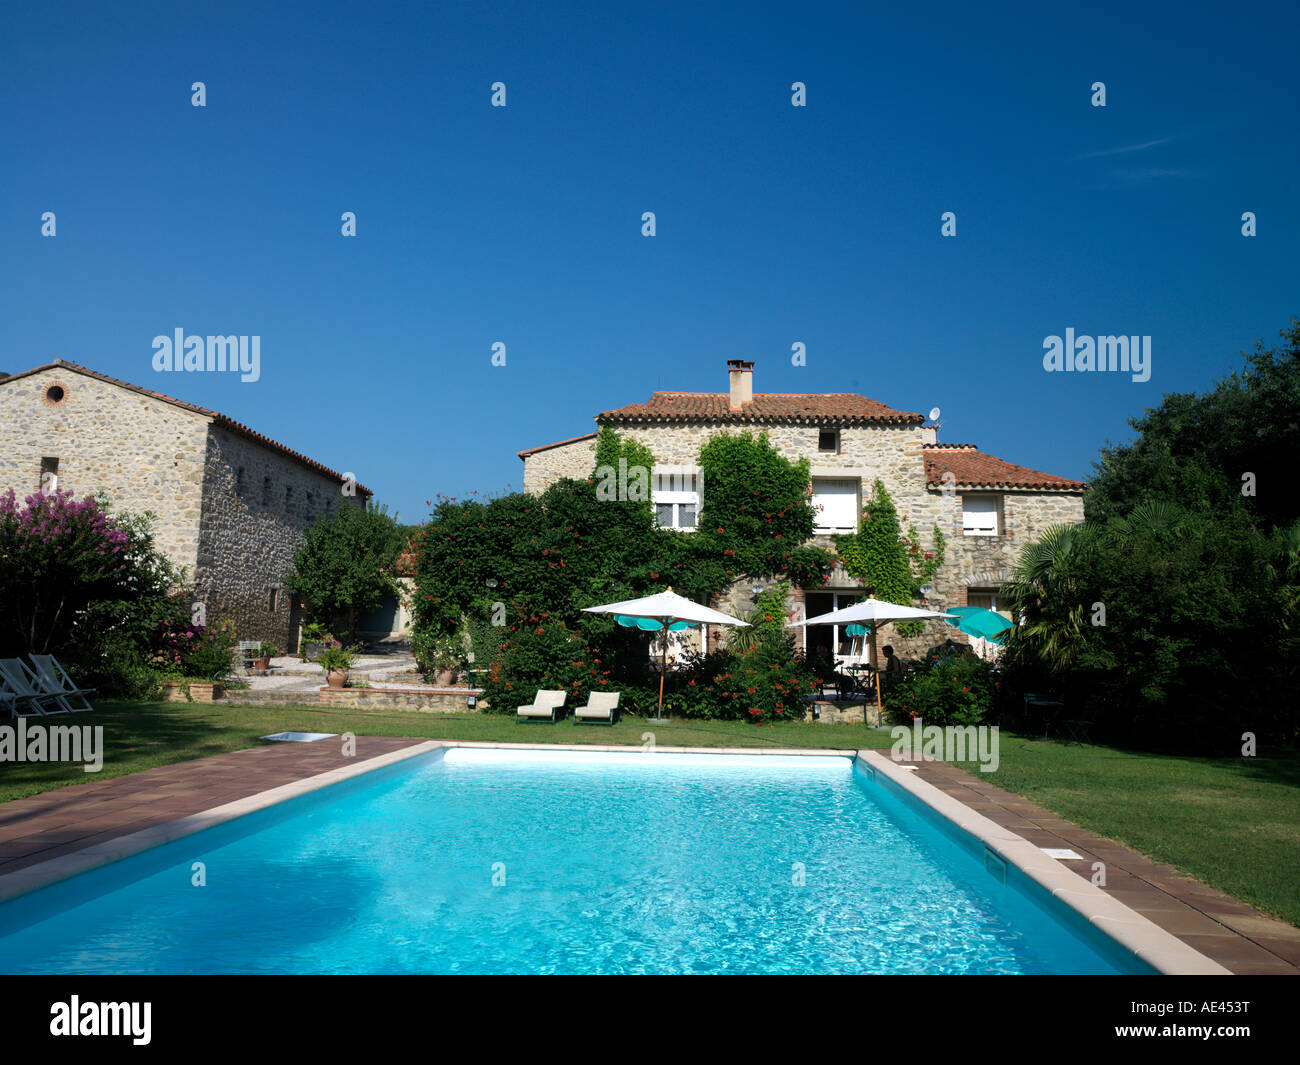 Superb Ceret Languedoc And Roussillon France Mas Trilles Family Run Small Hotel  XVII Building With Swimming Pool